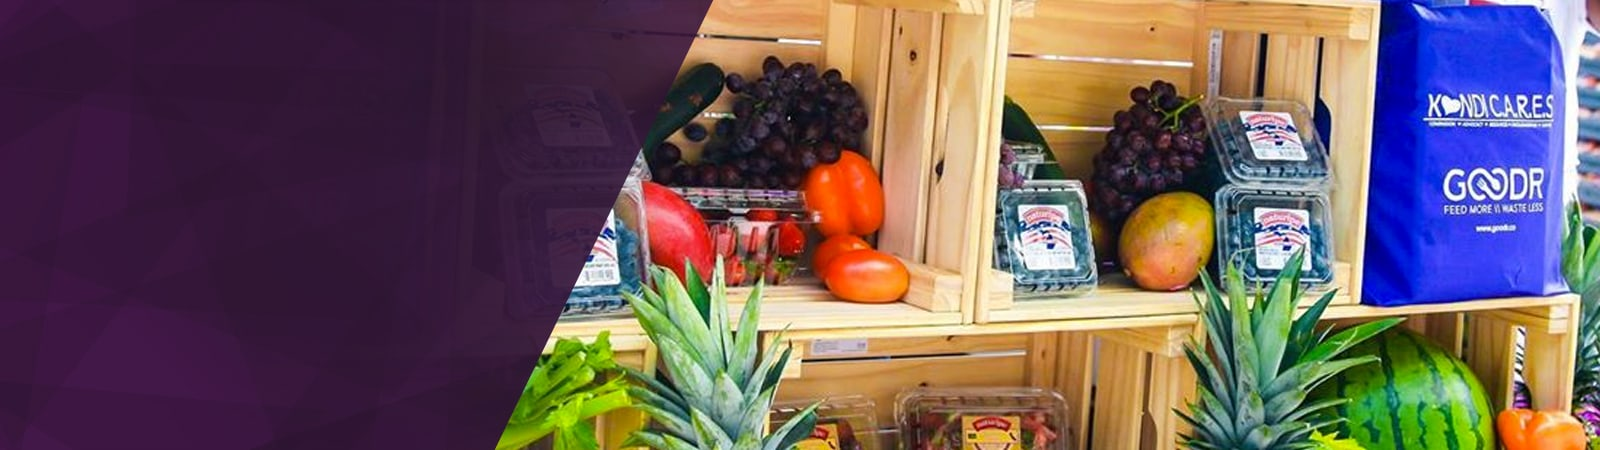 FREE GROCERY POP-UP